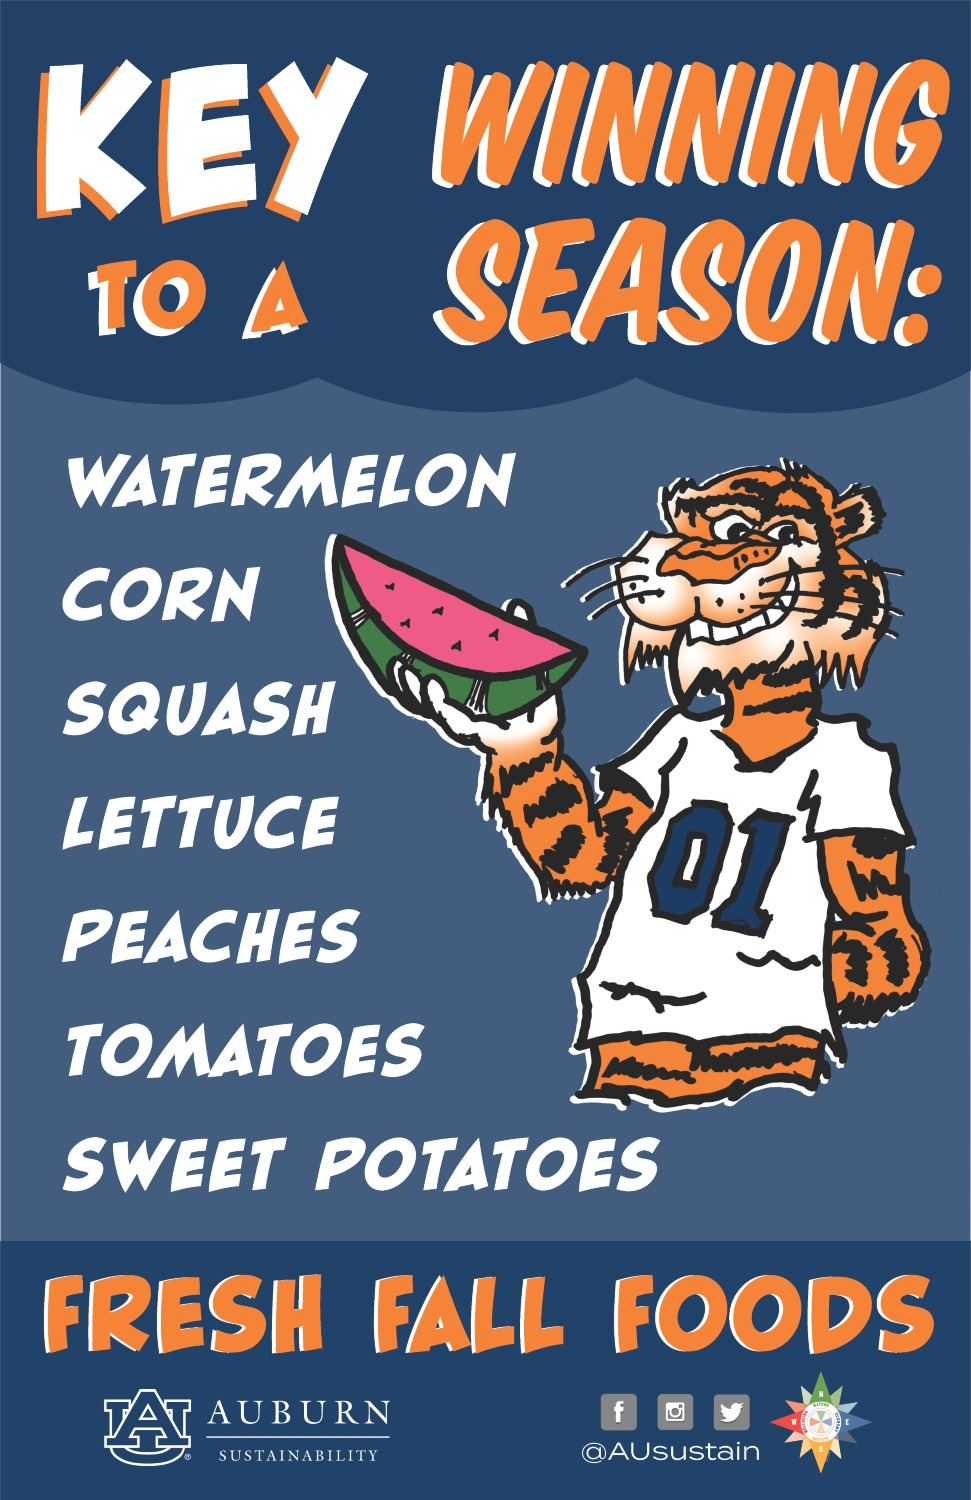 Graphic listing seasonal foods for fall in Alabama.